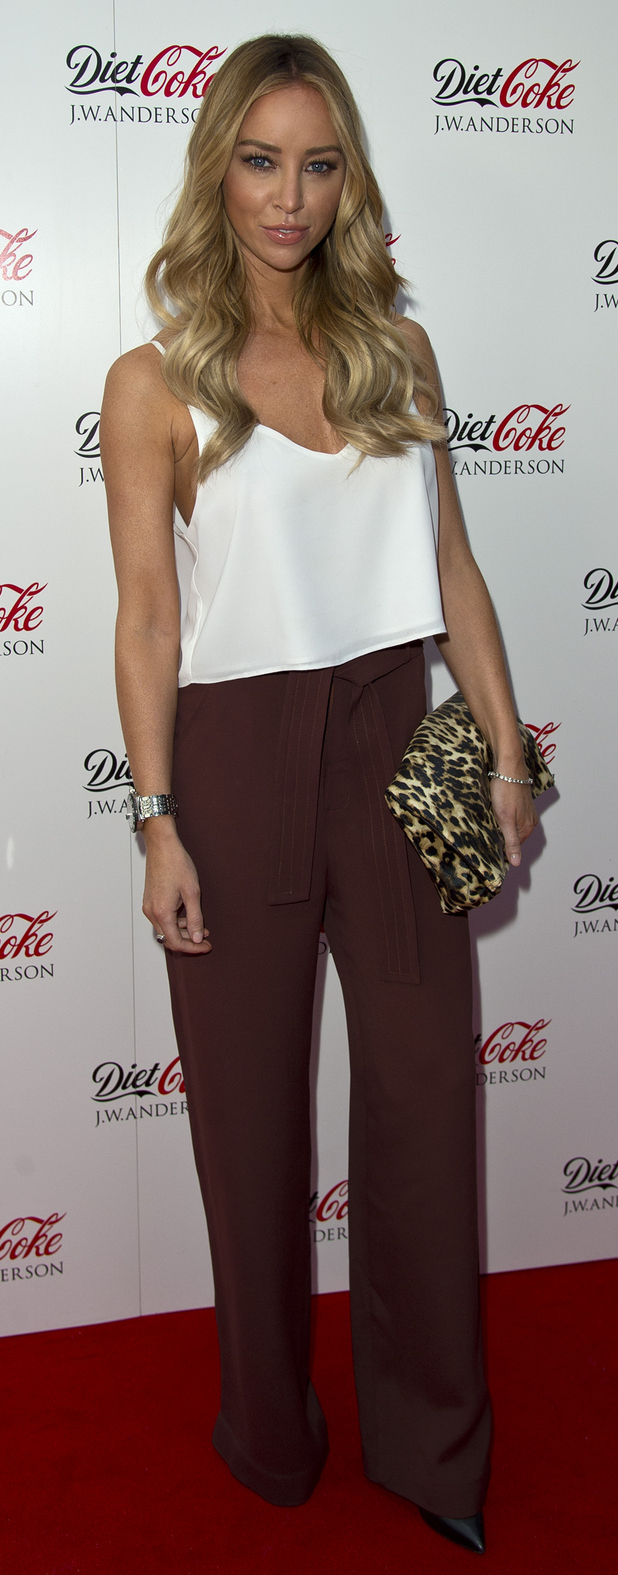 TOWIE's Lauren Pope at the Diet Coke x J.W Anderson Party in London, 31st July 2015